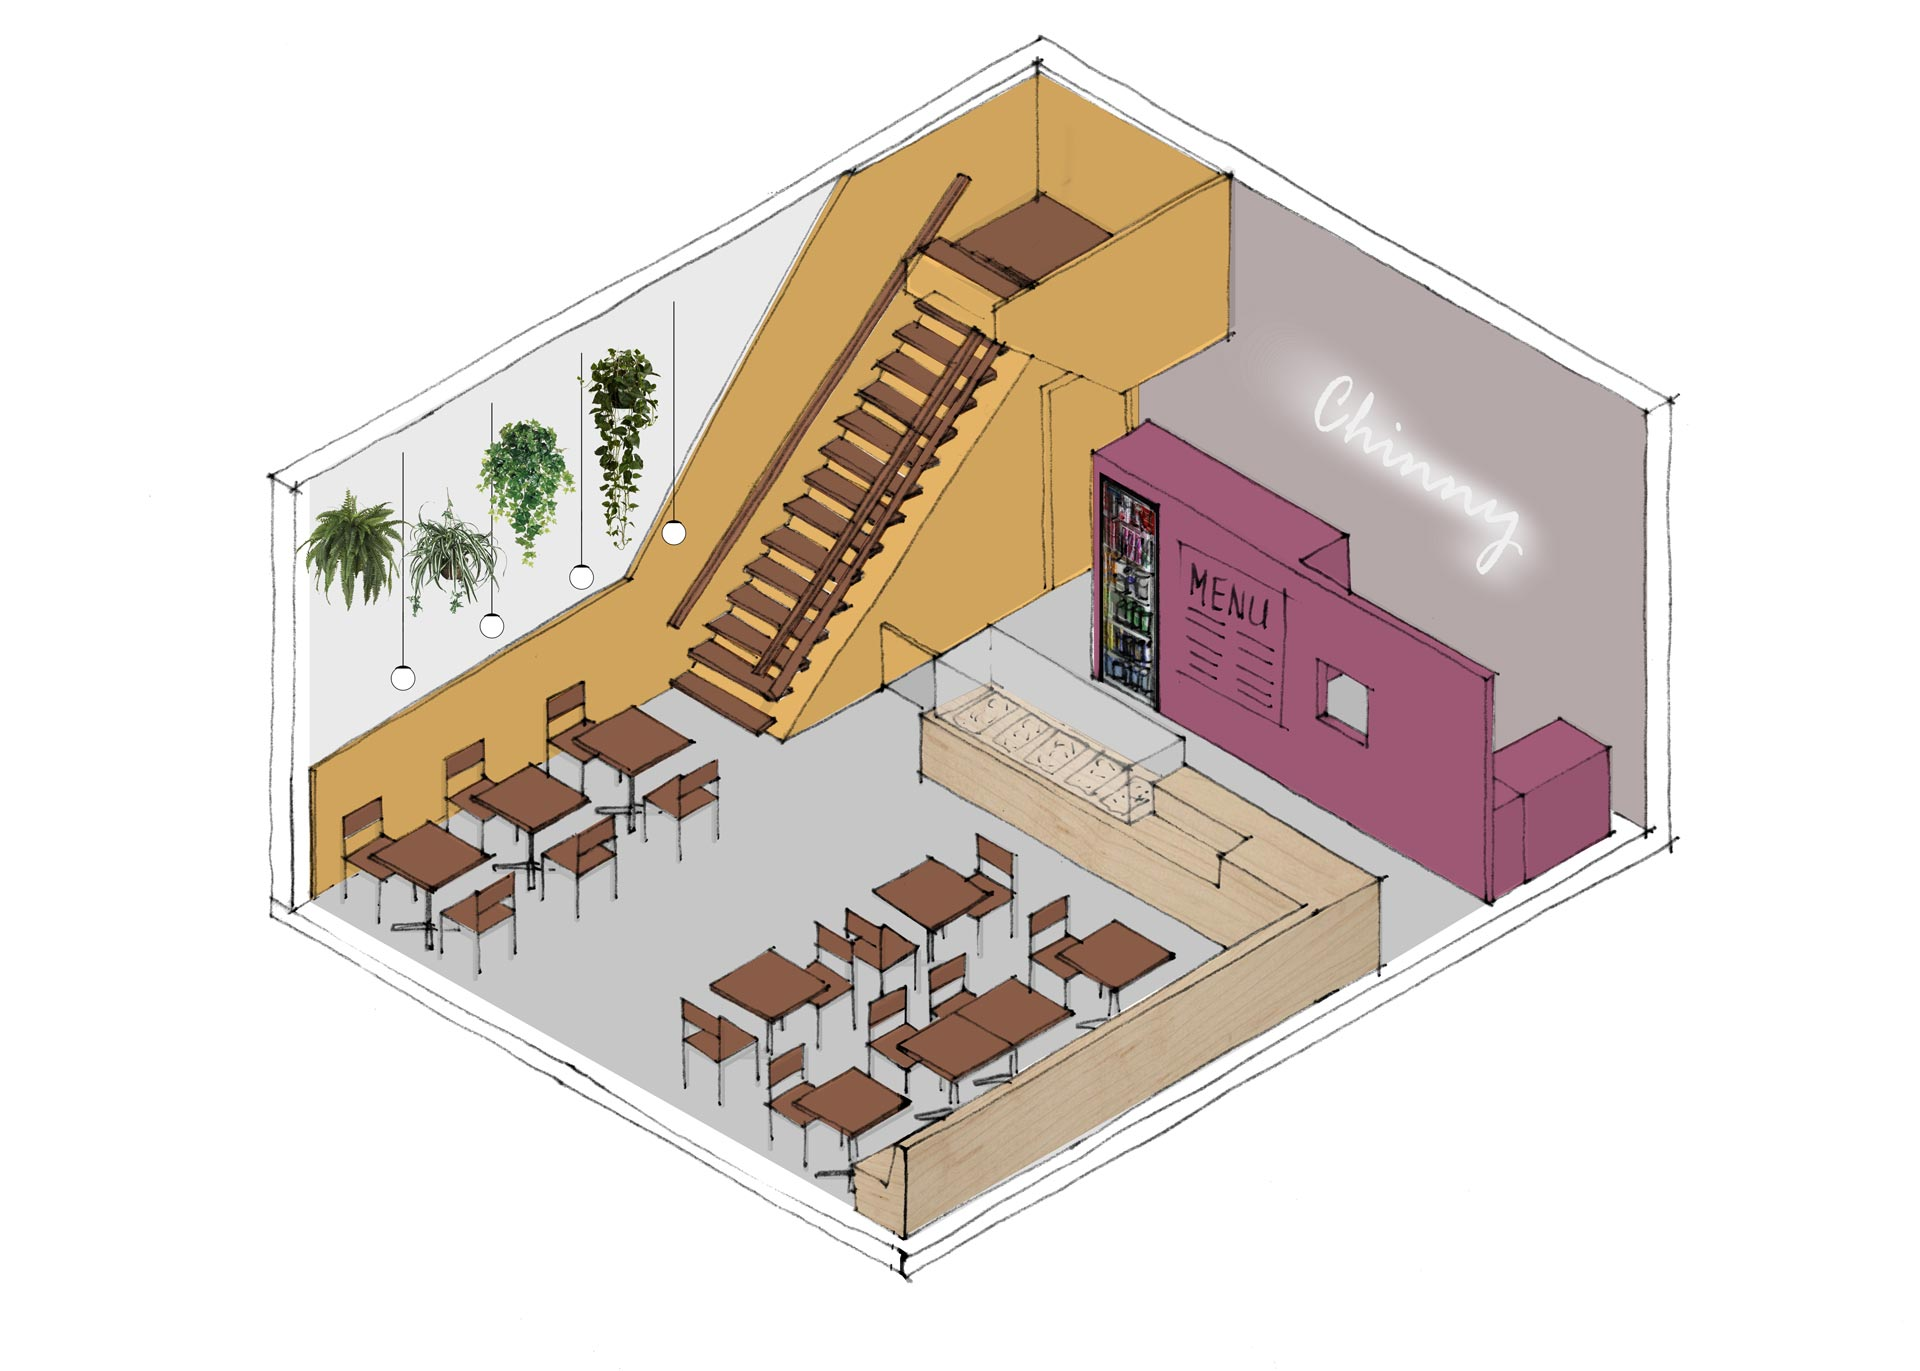 Chinny-Surinam-Streetfood-restaurant-interior-isometric-option-1-lagado-architects